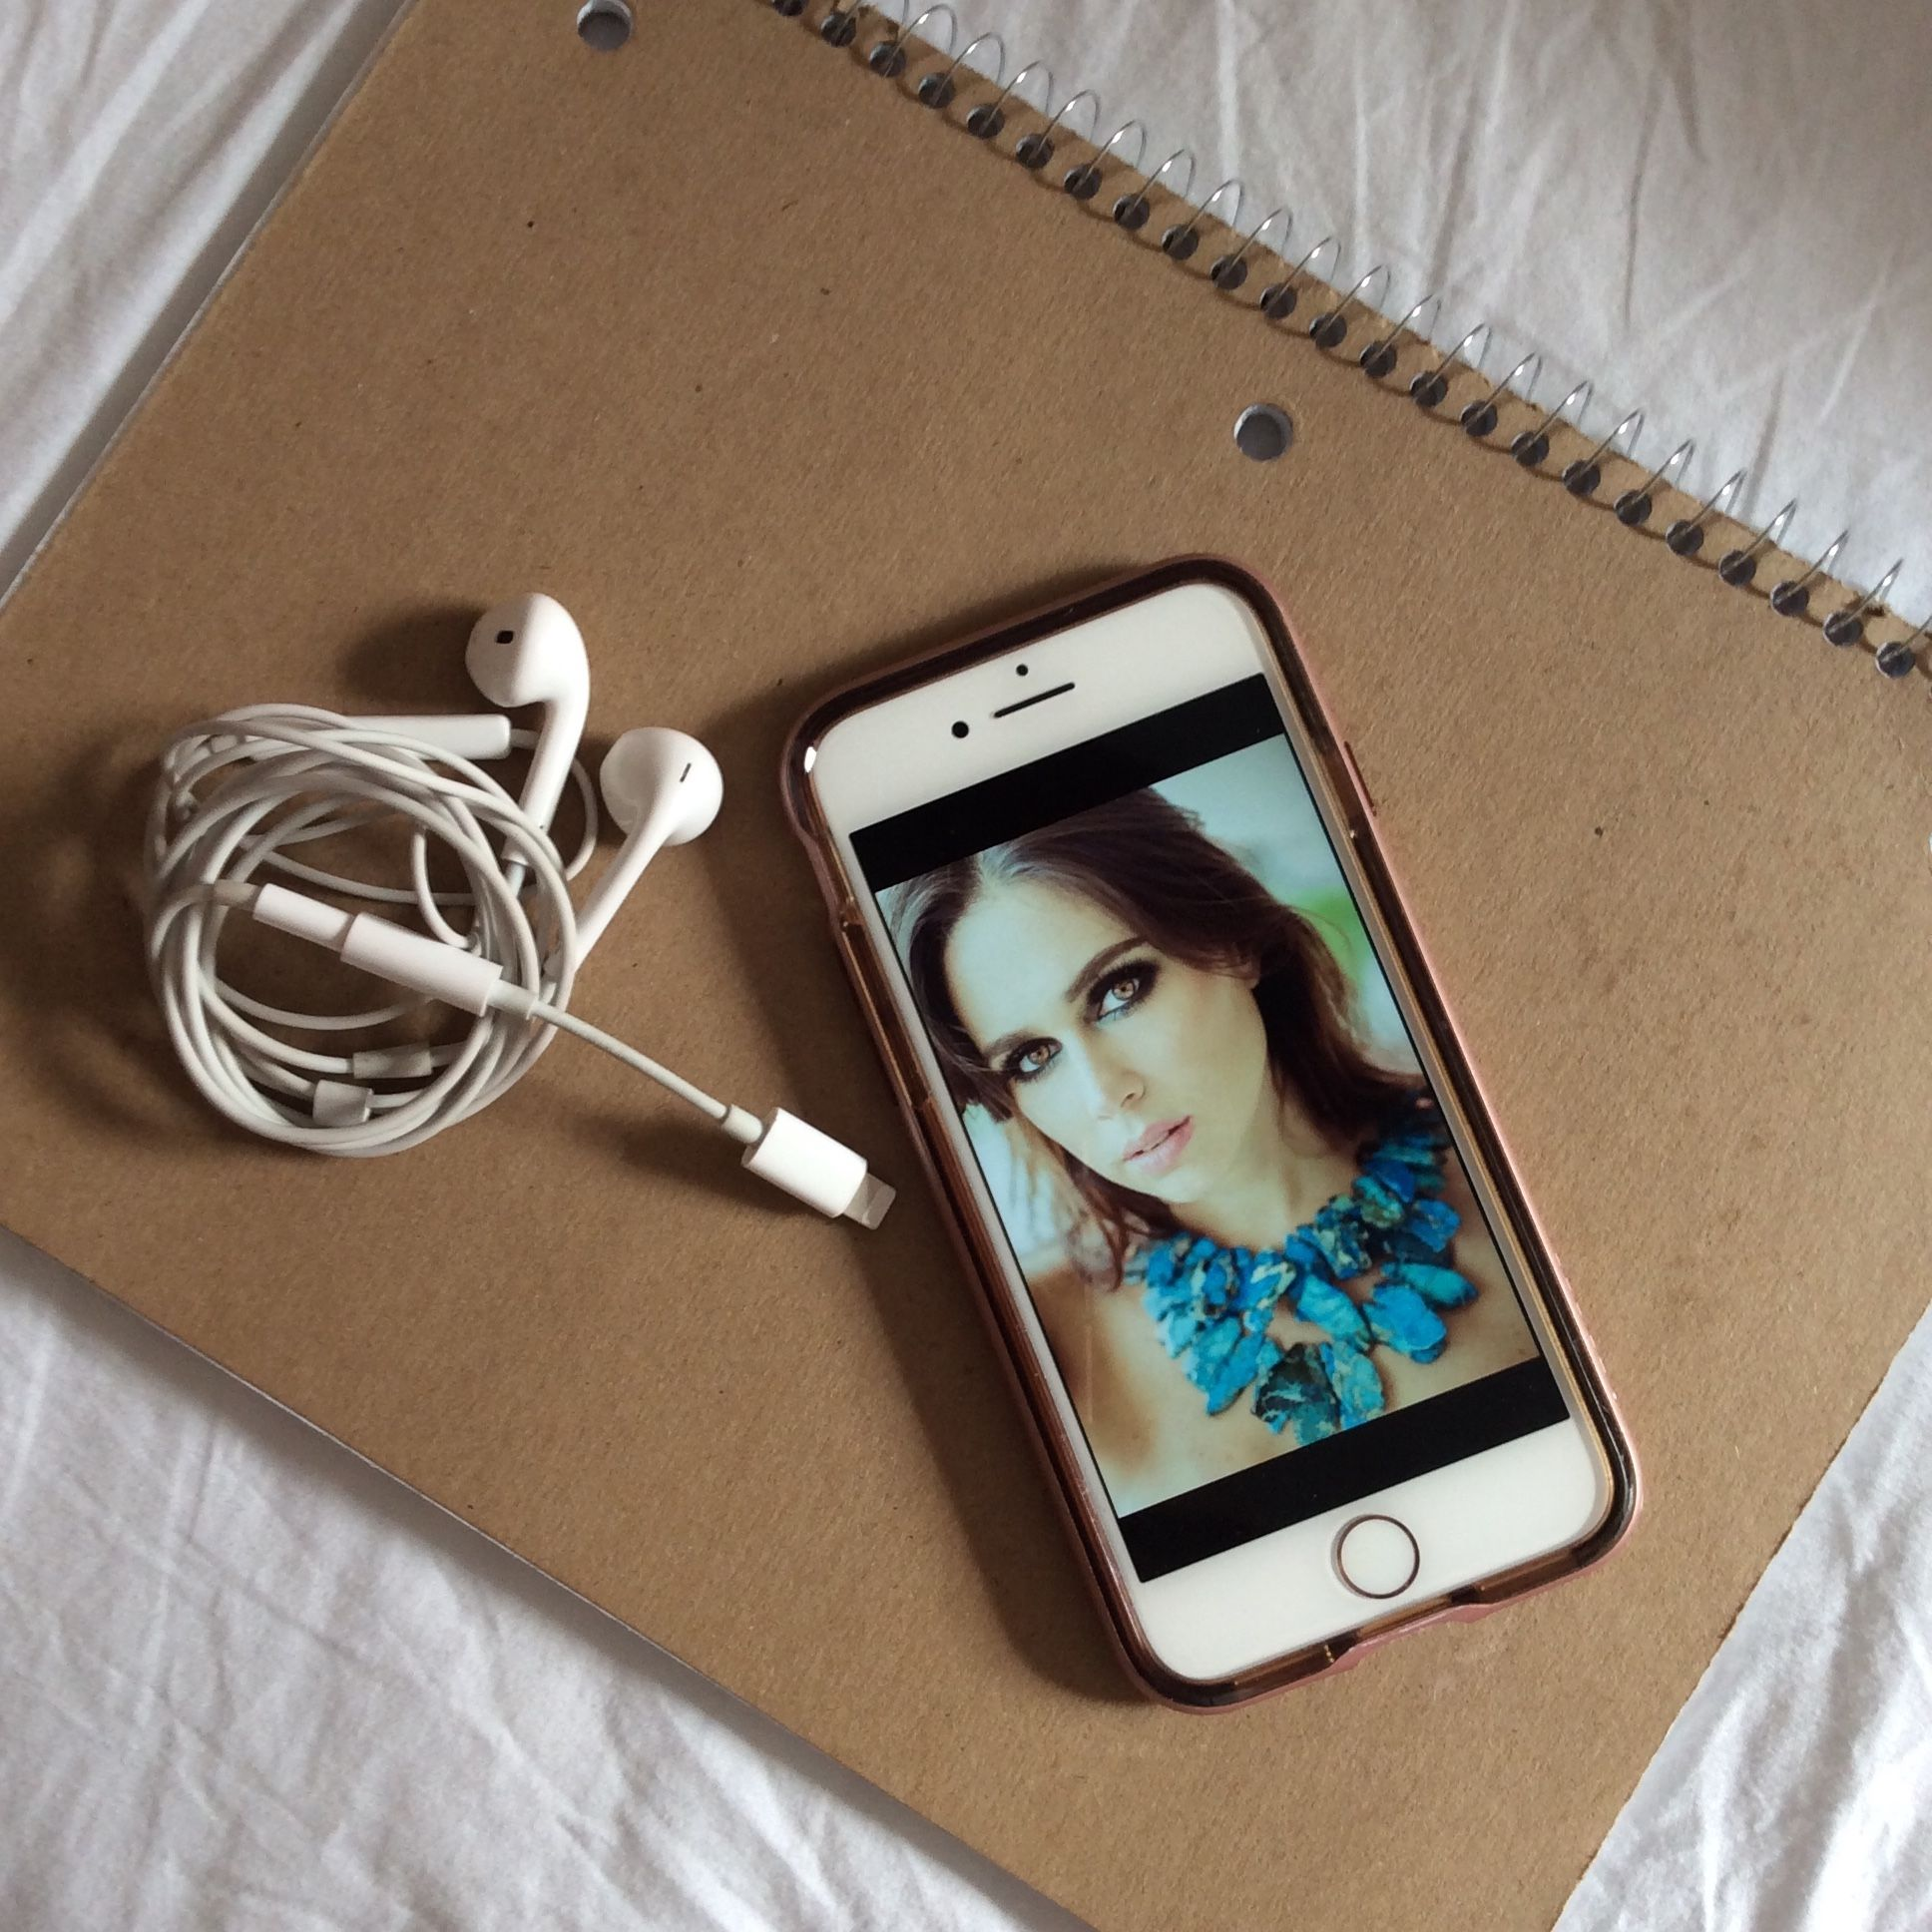 Pin by FiorellaSolines on My story | Phone, Mp3 player